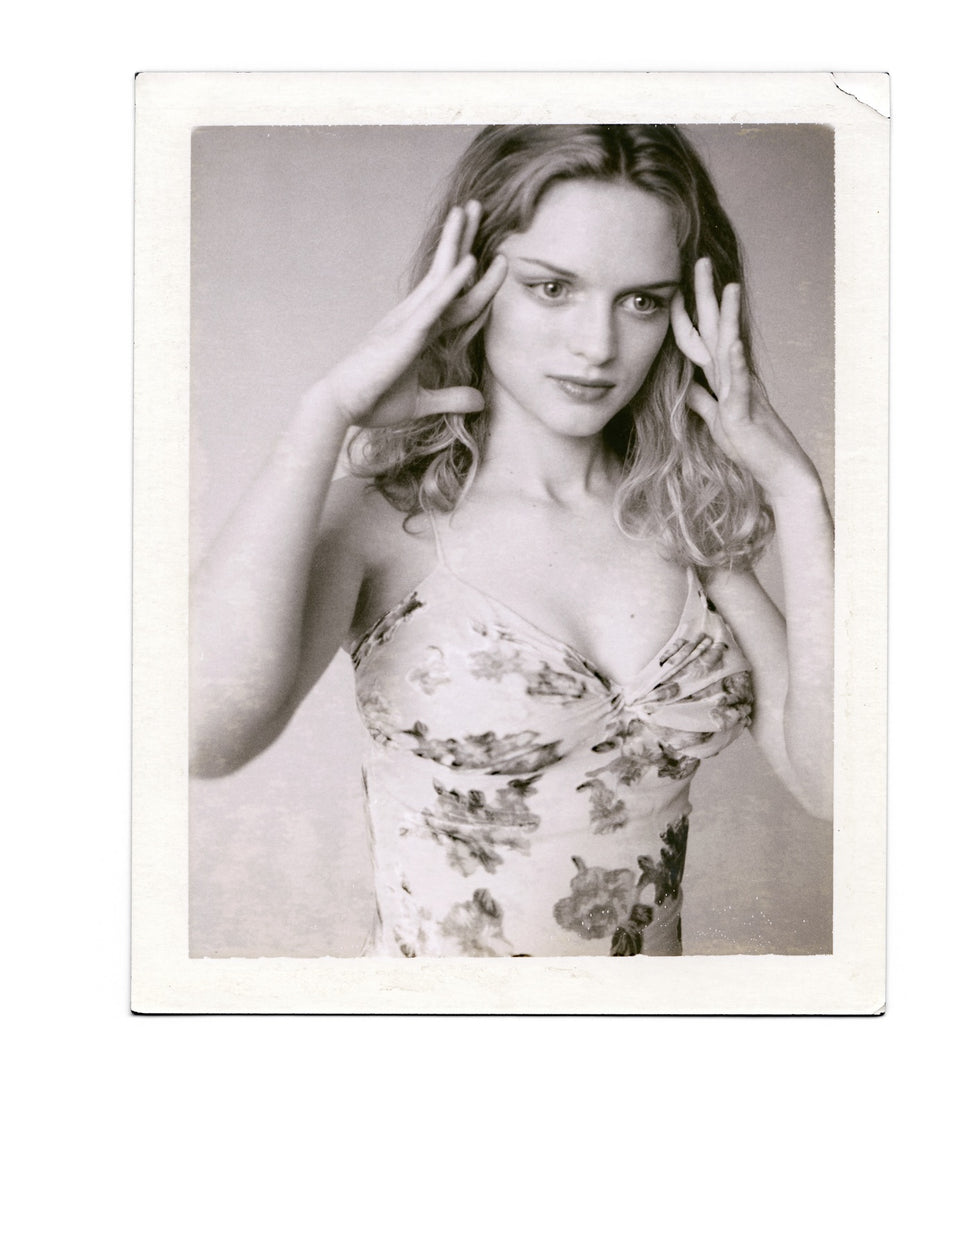 Heather Graham - Original Polaroid